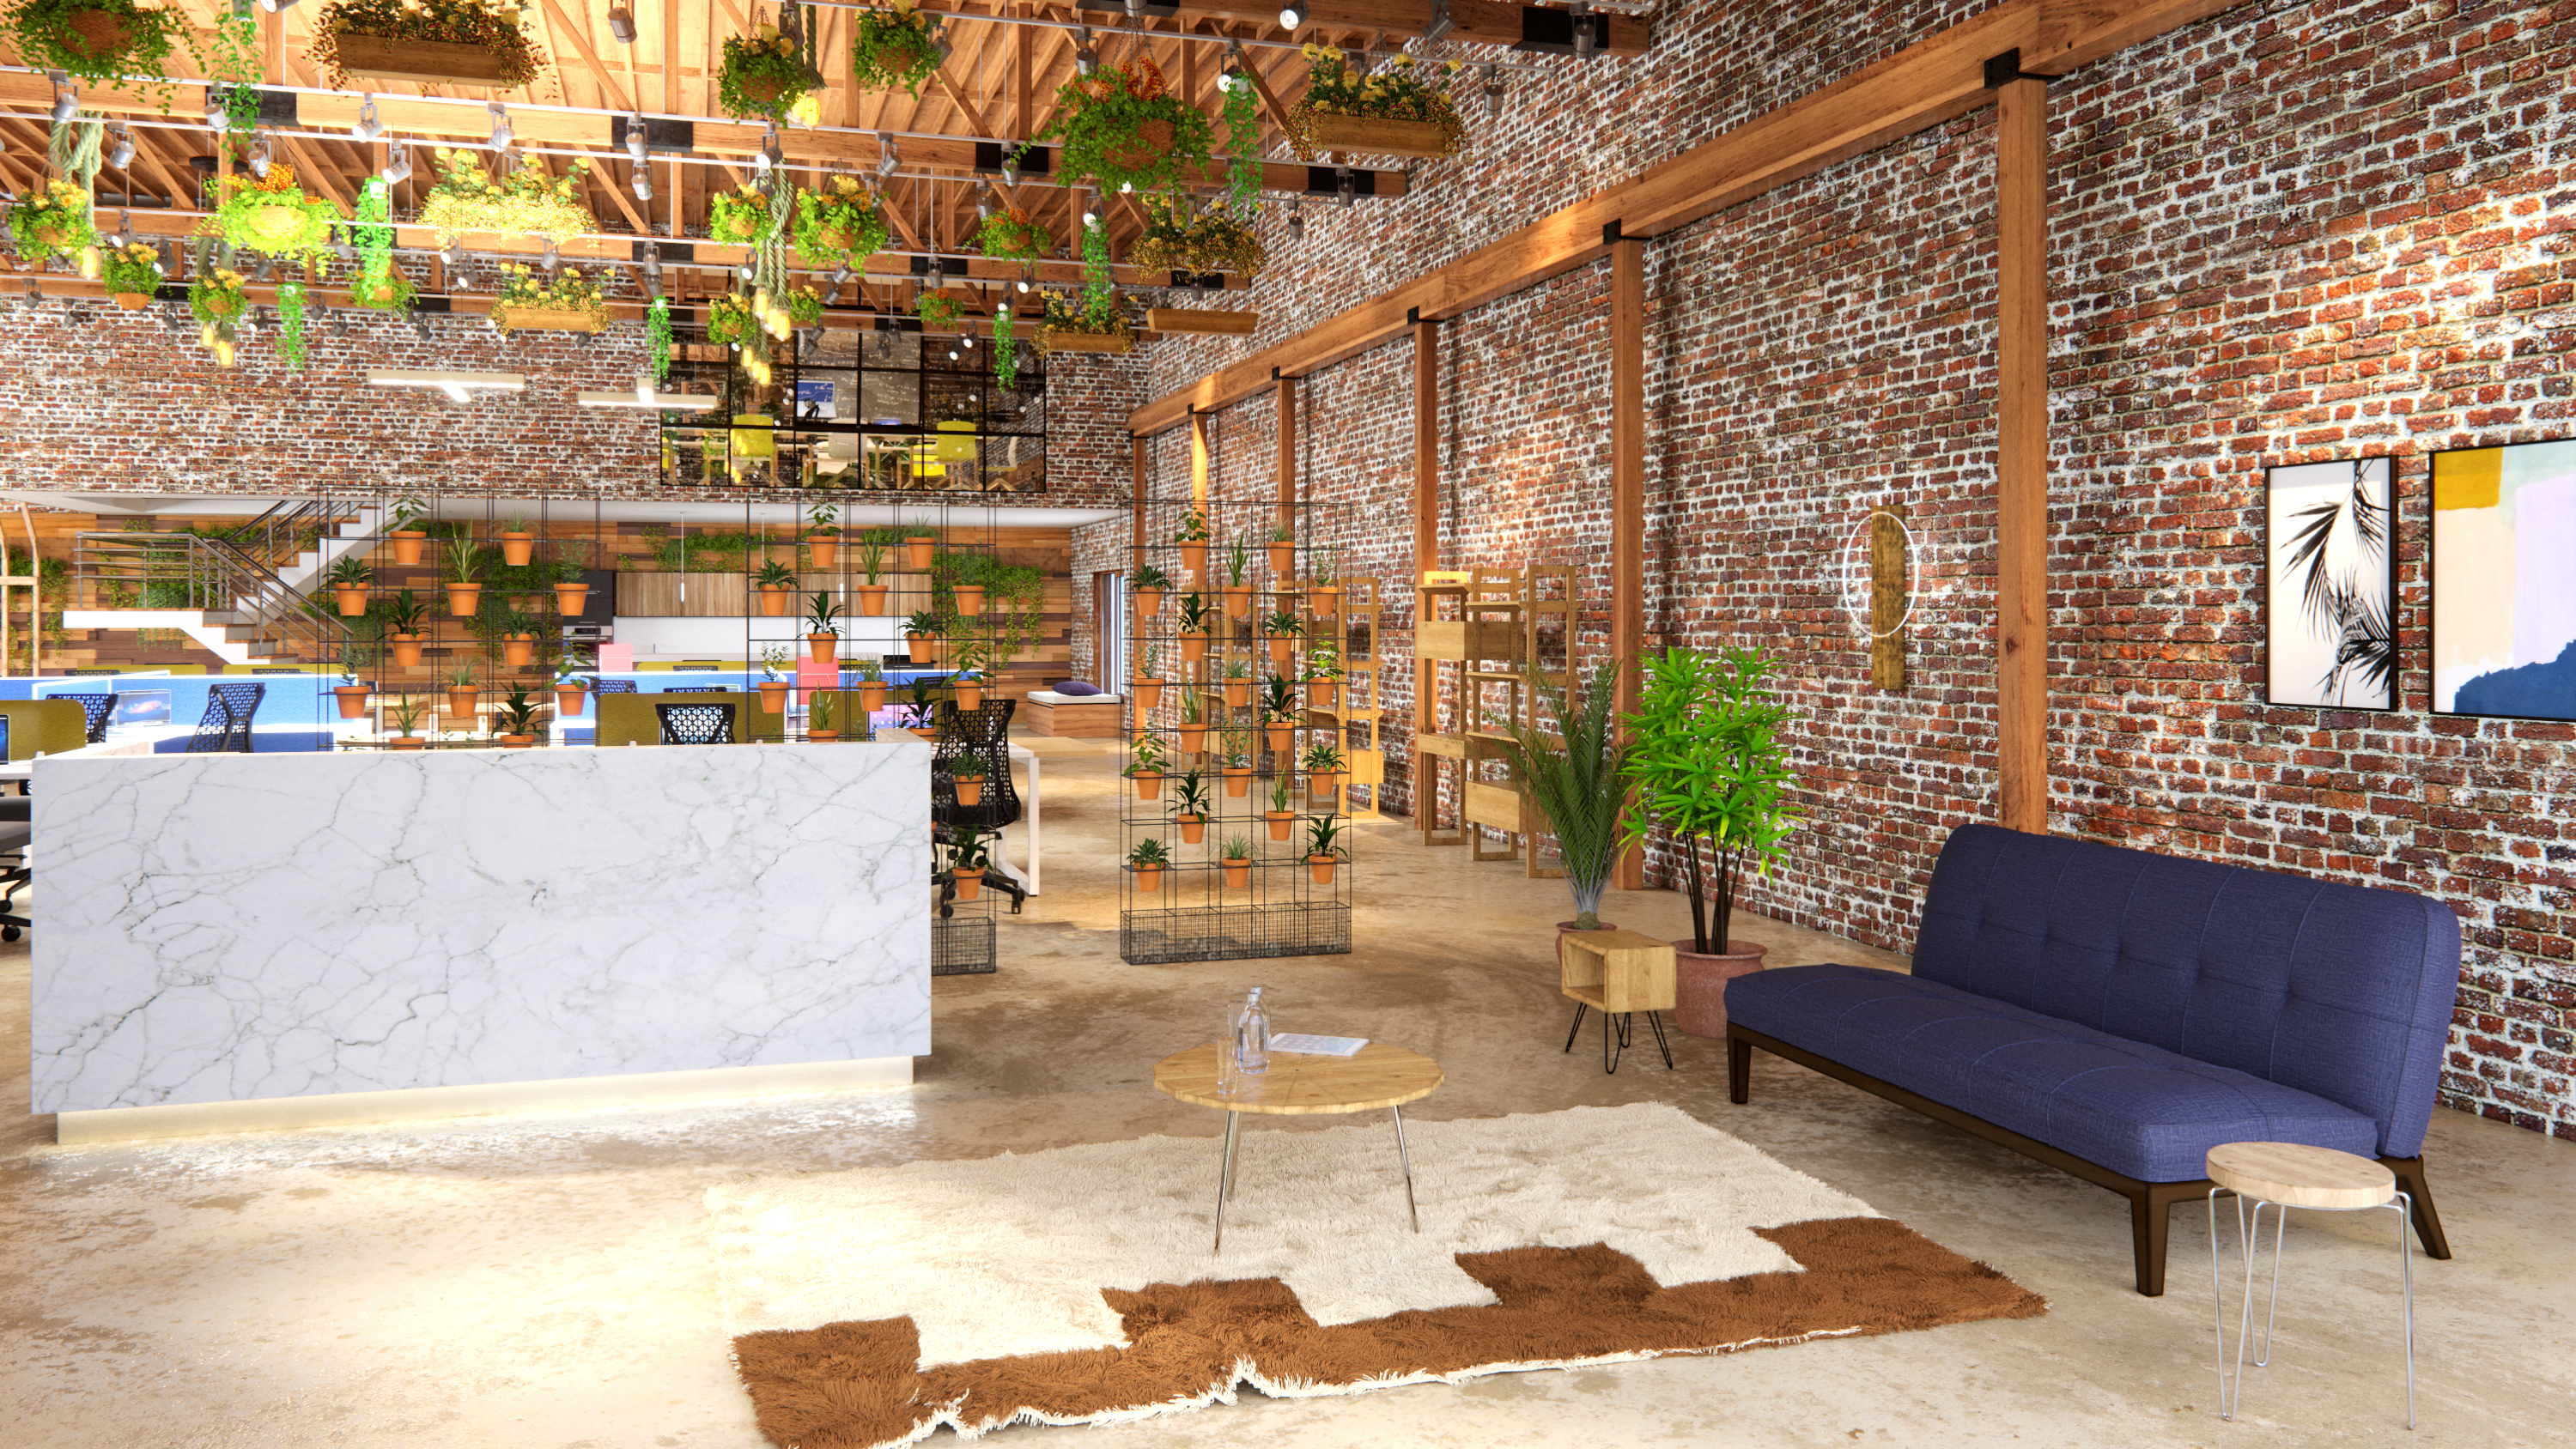 Industrial Office Reception Area with Wooden Furniture, Plants and a Marble Reception Desk